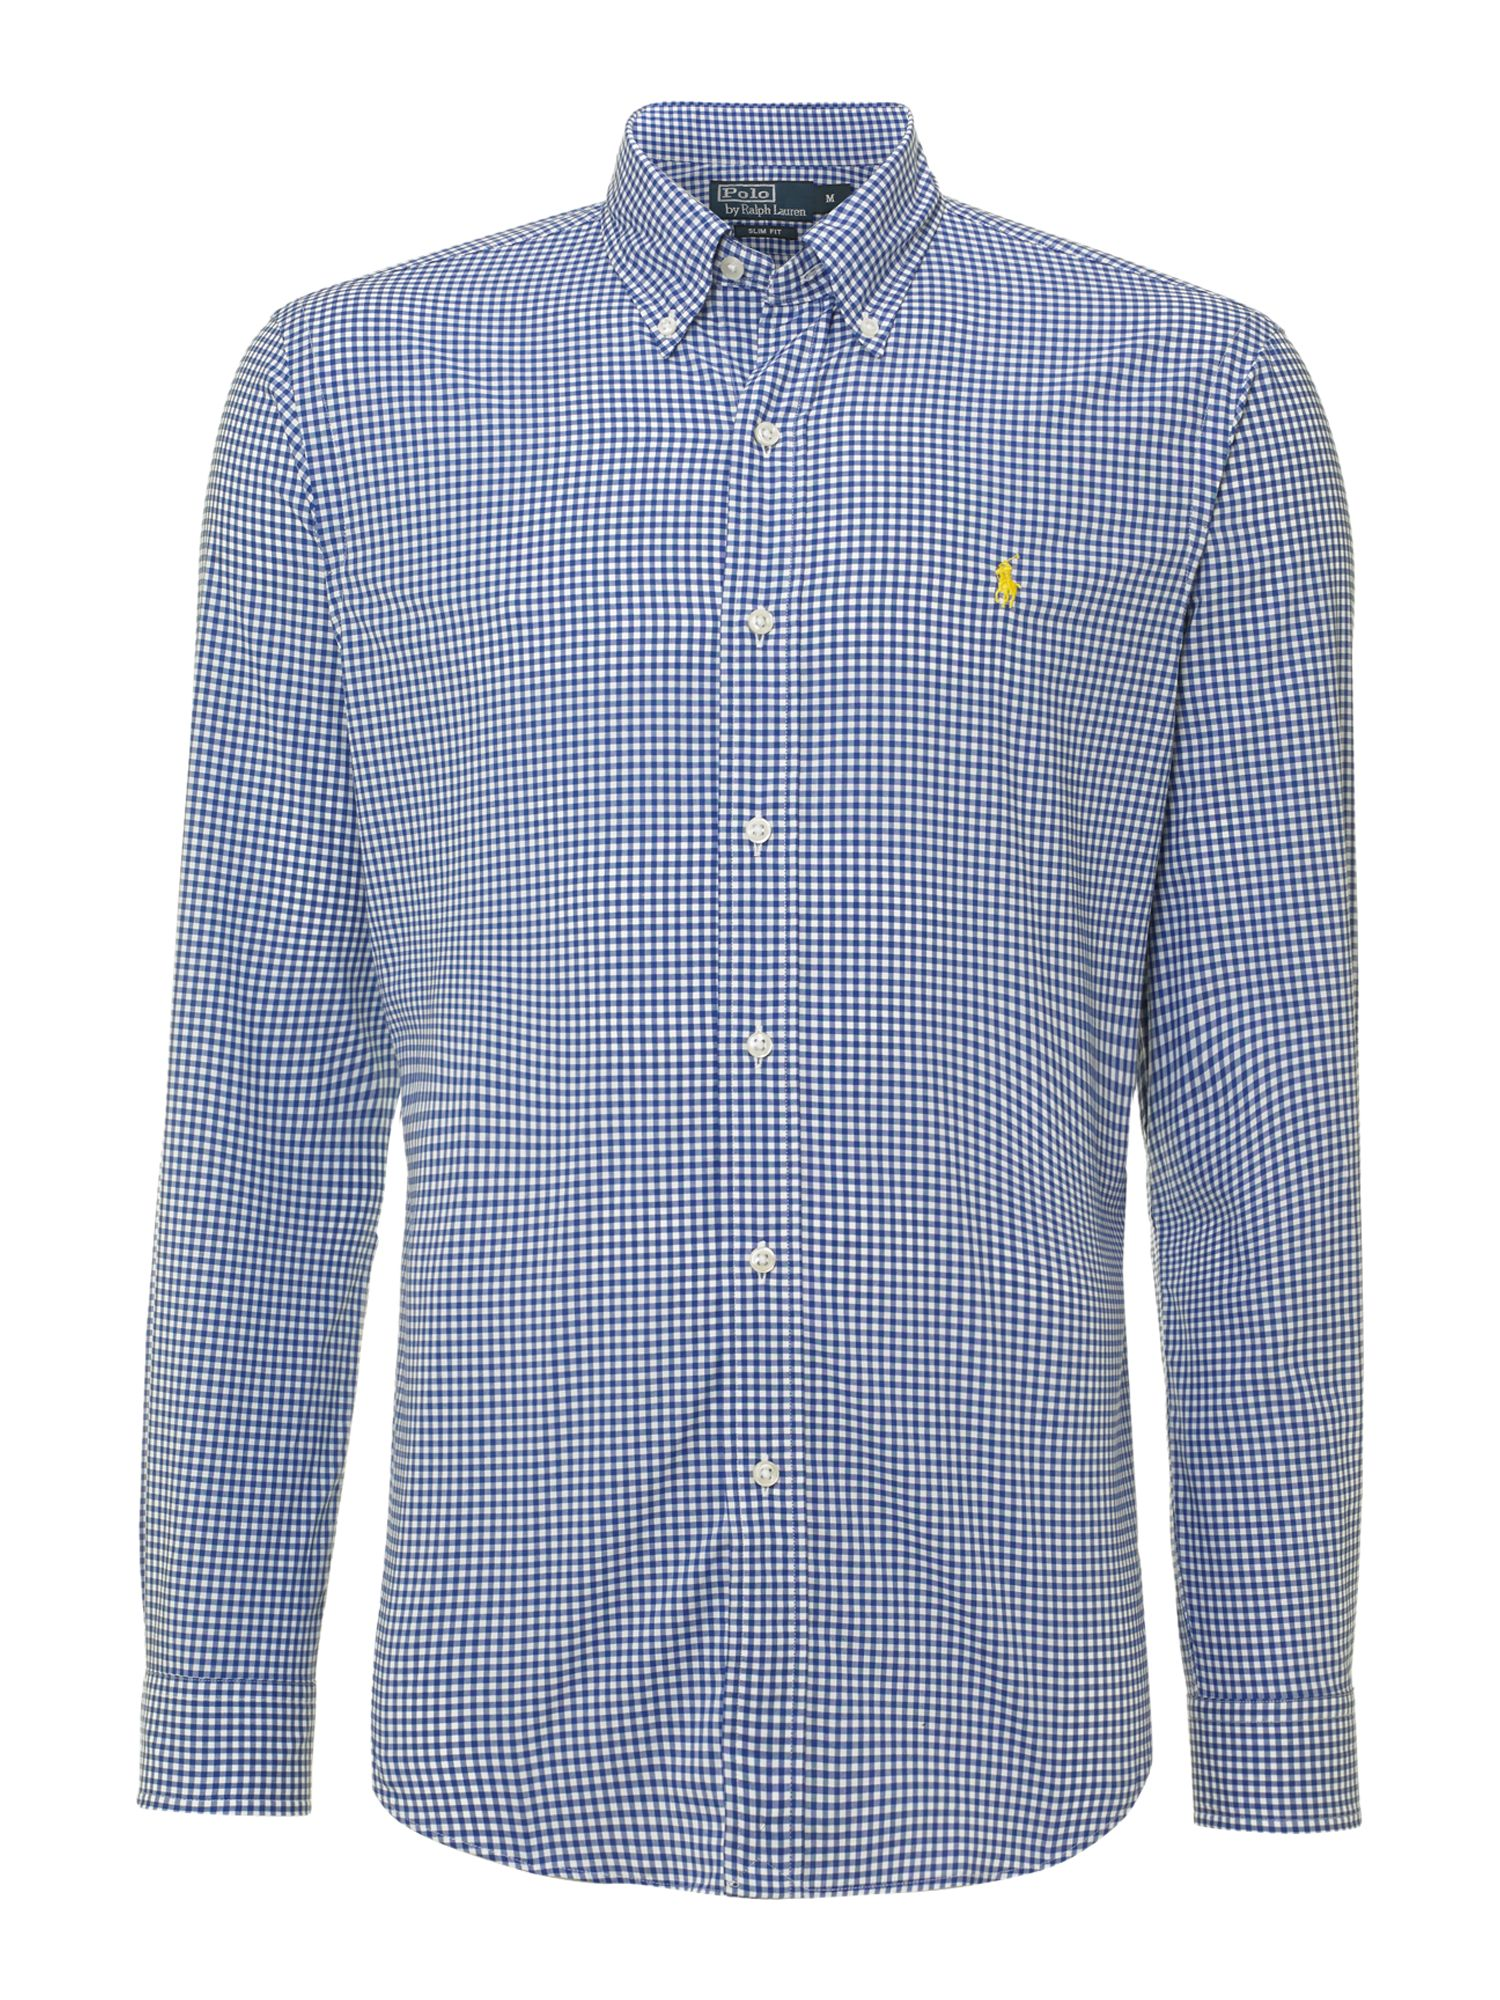 polo ralph lauren slim fit gingham check shirt in blue for men lyst. Black Bedroom Furniture Sets. Home Design Ideas